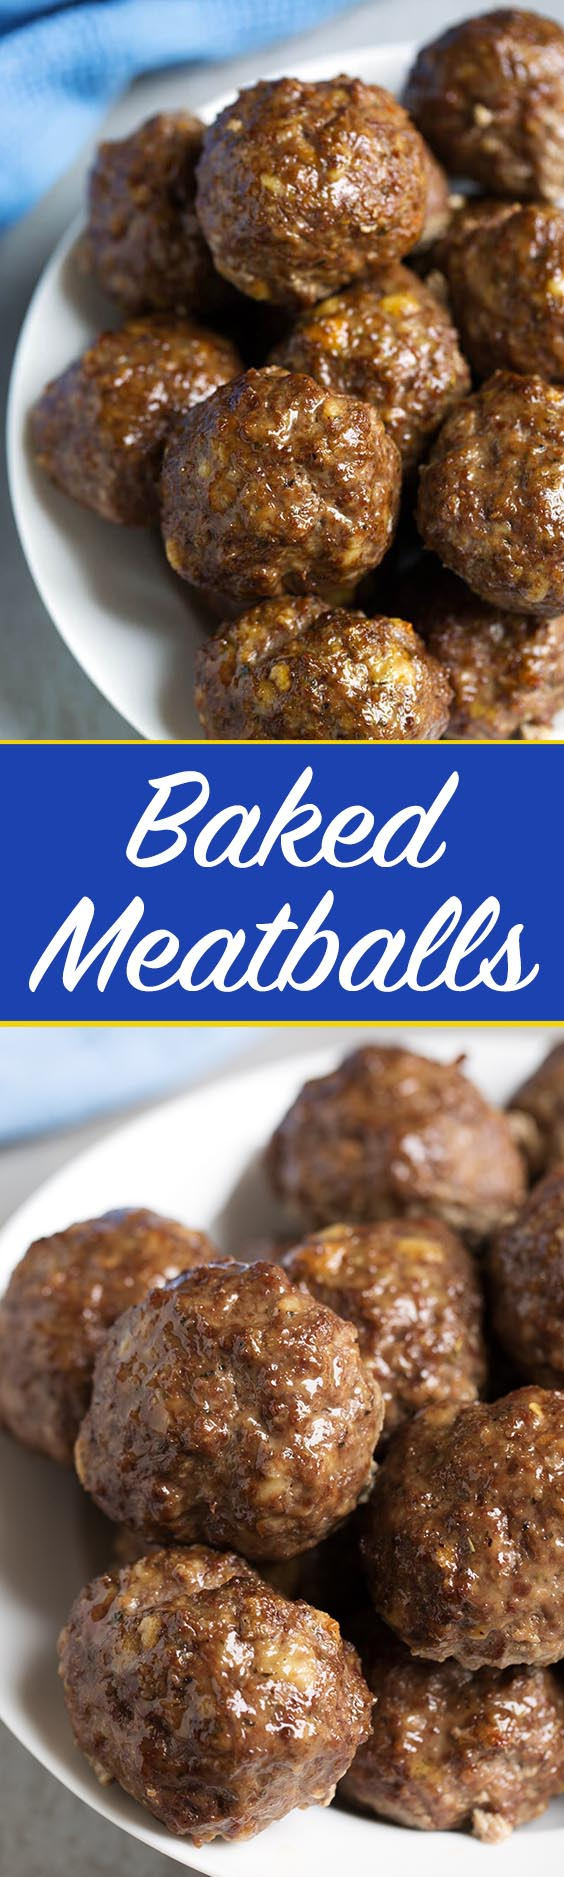 Easy Baked Meatballs have amazing flavor, and are ready in under an hour. We love them in spaghetti! simplyhappyfoodie.com #easymeatballs #bakedmeatballs #meatballs